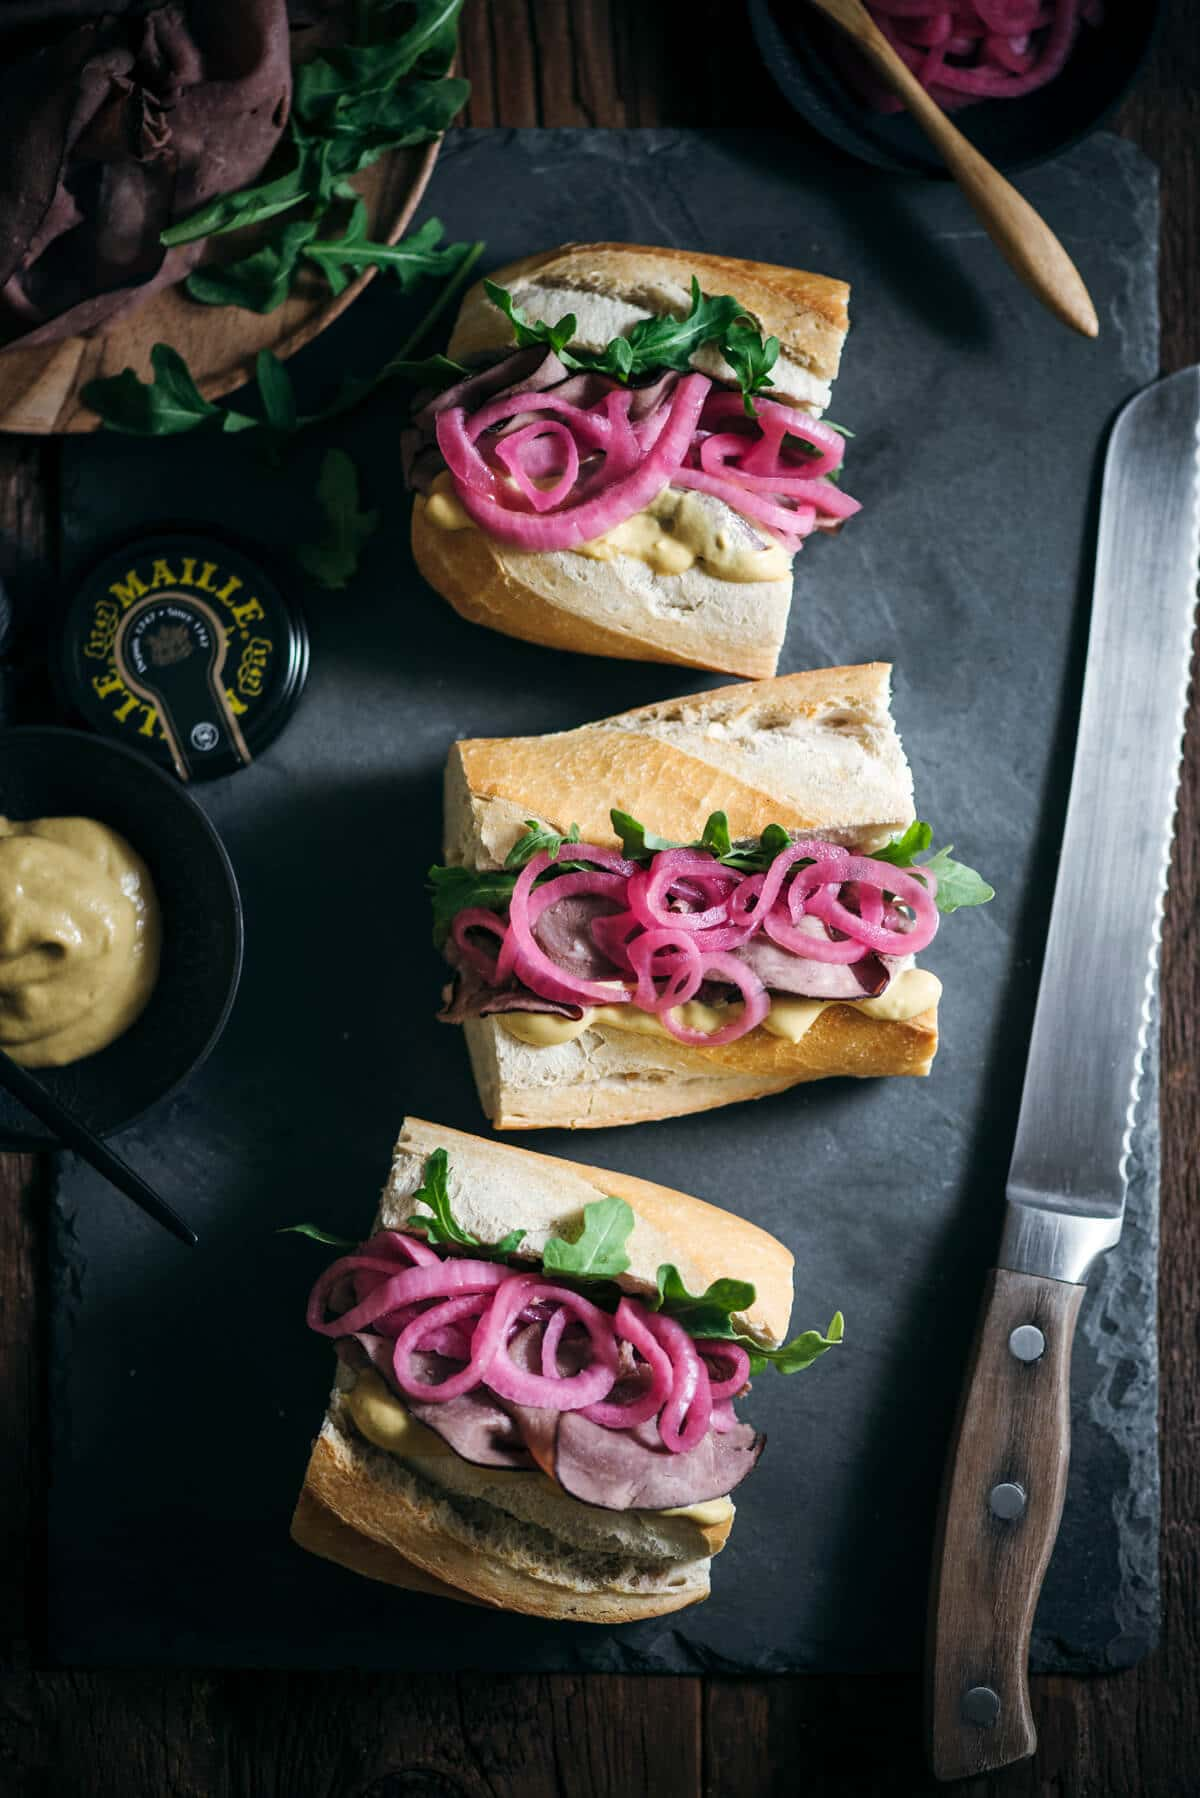 Board with made sandwiches